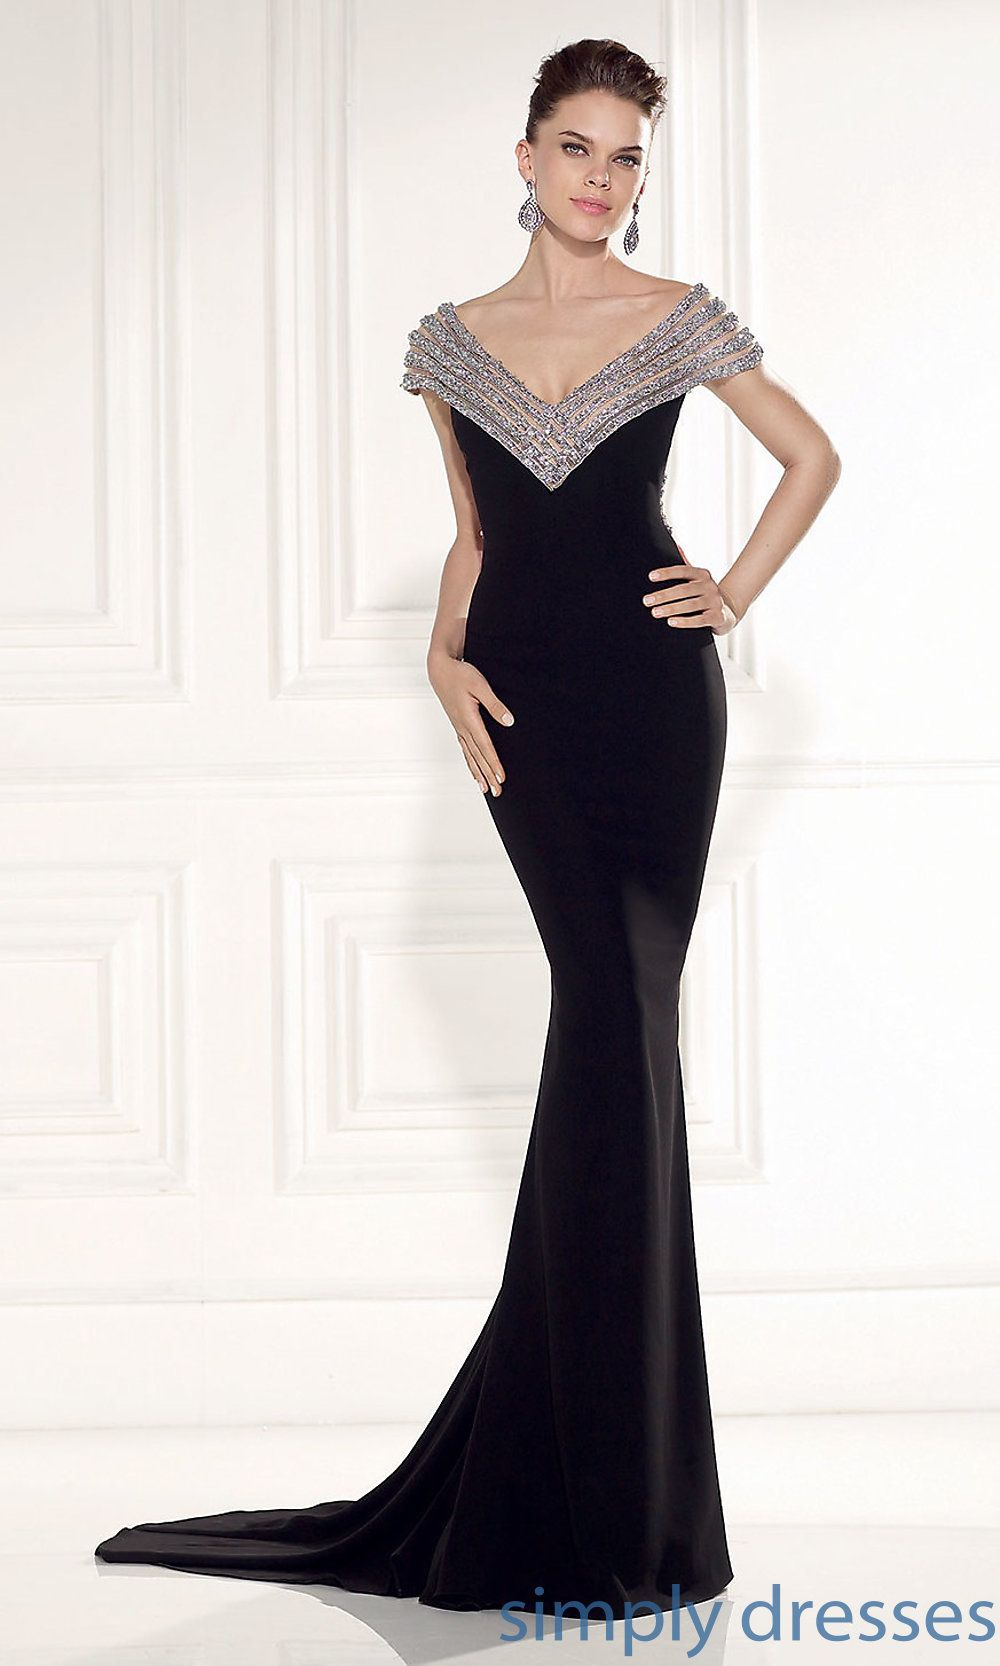 d86b4076b6b Shop Simply Dresses for homecoming party dresses